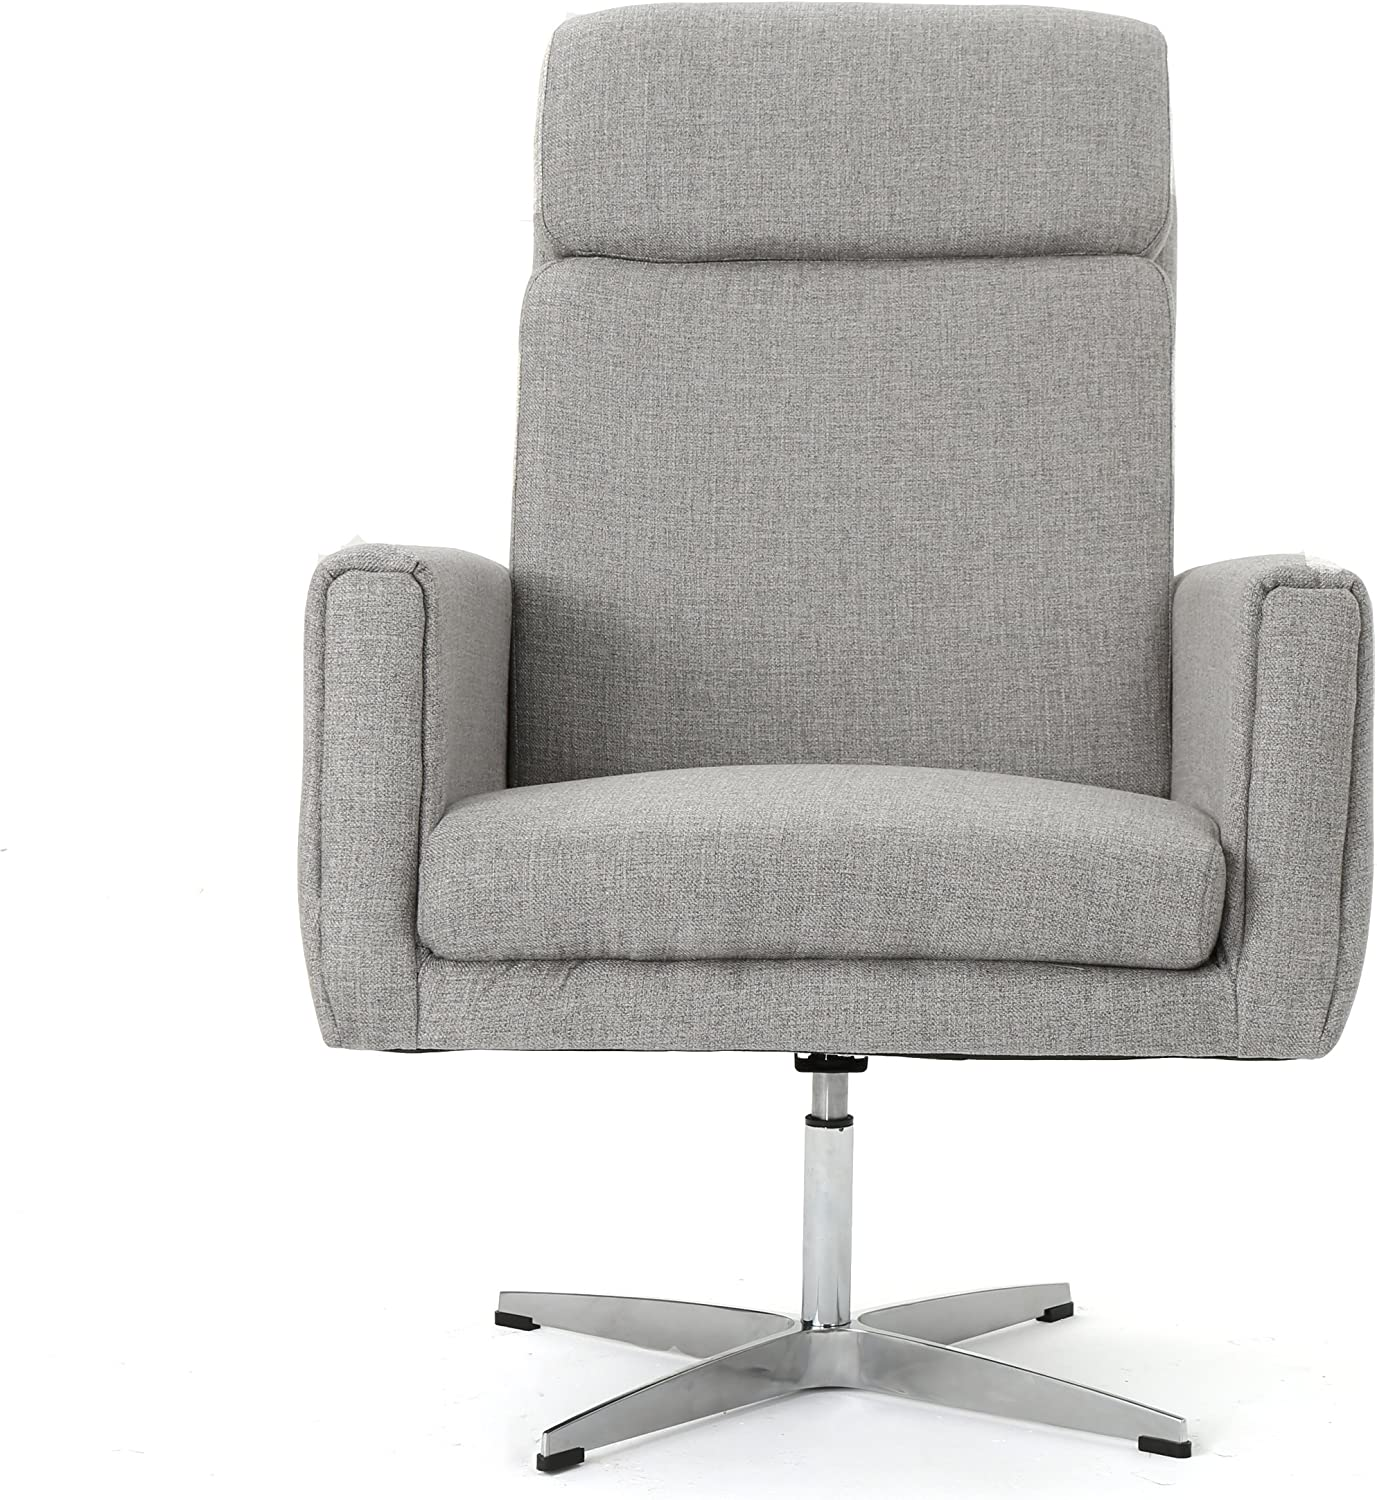 Christopher Knight Home Horatia Modern Fabric Swivel Accent Chair, Grey / Brushed Steel